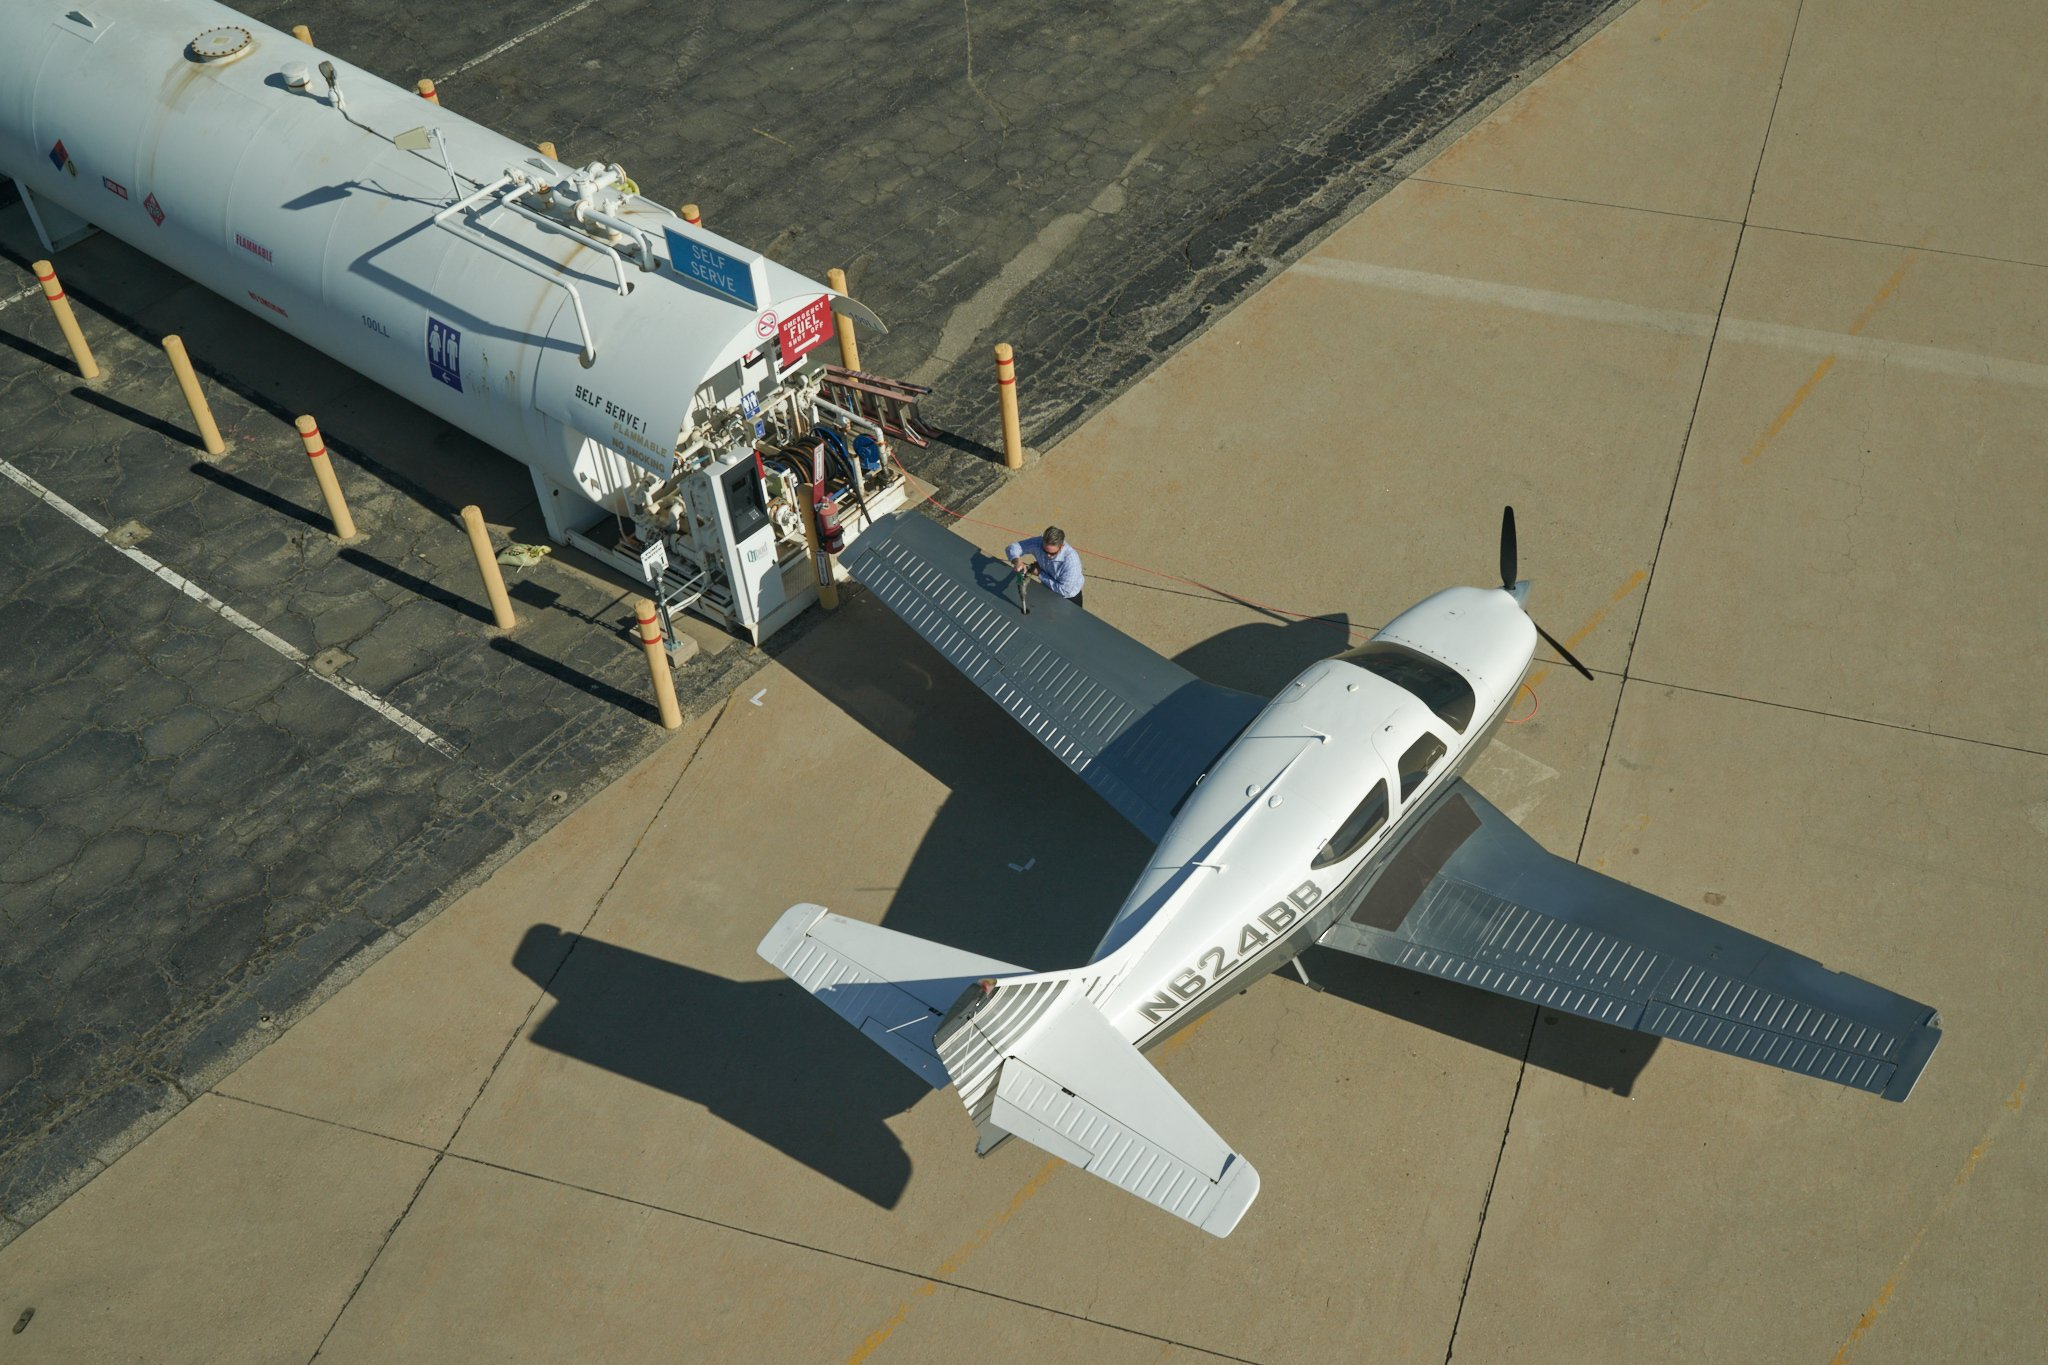 Image of pilot fueling a small single engine plane on the ramp at SBD airport